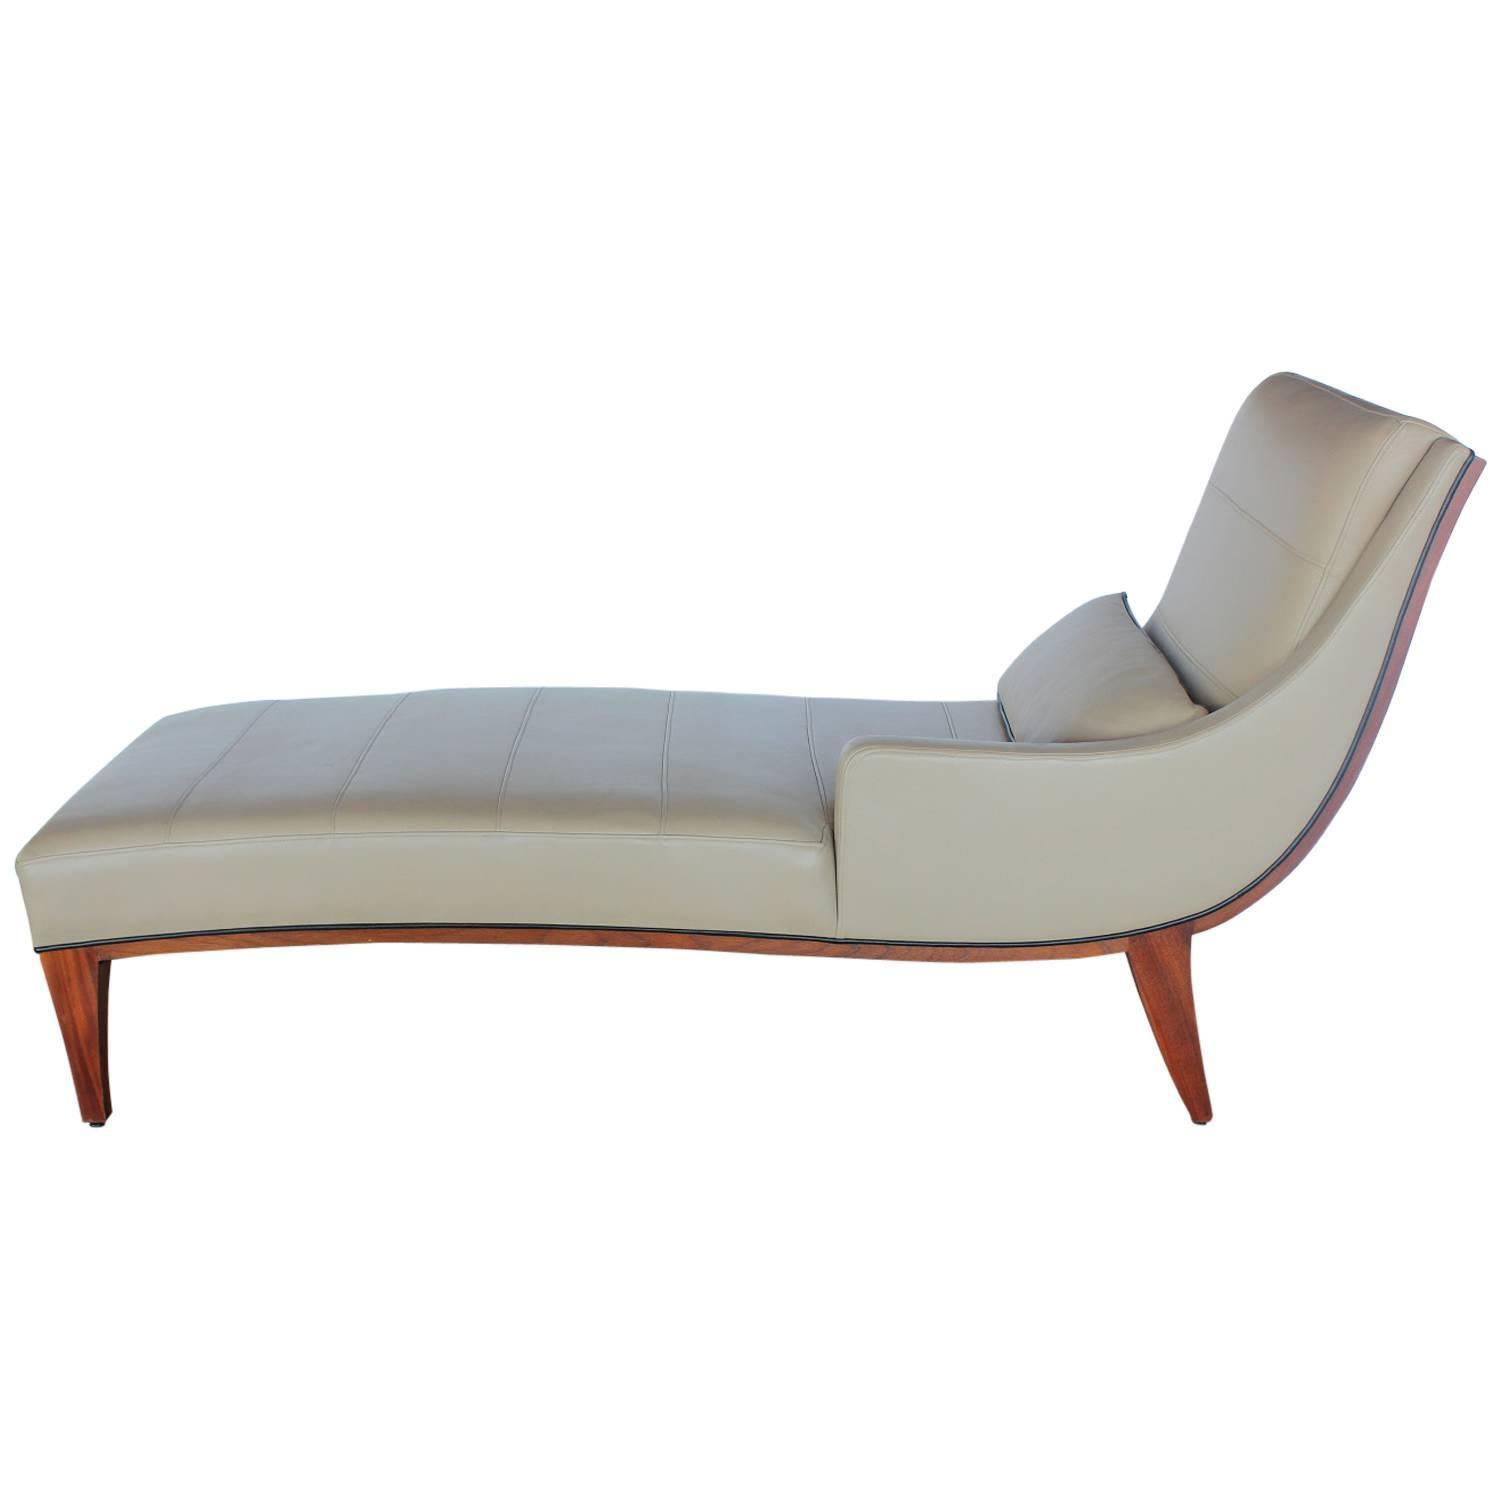 Modern leather chaise lounge by widdicomb for sale at 1stdibs for Chaise contemporary